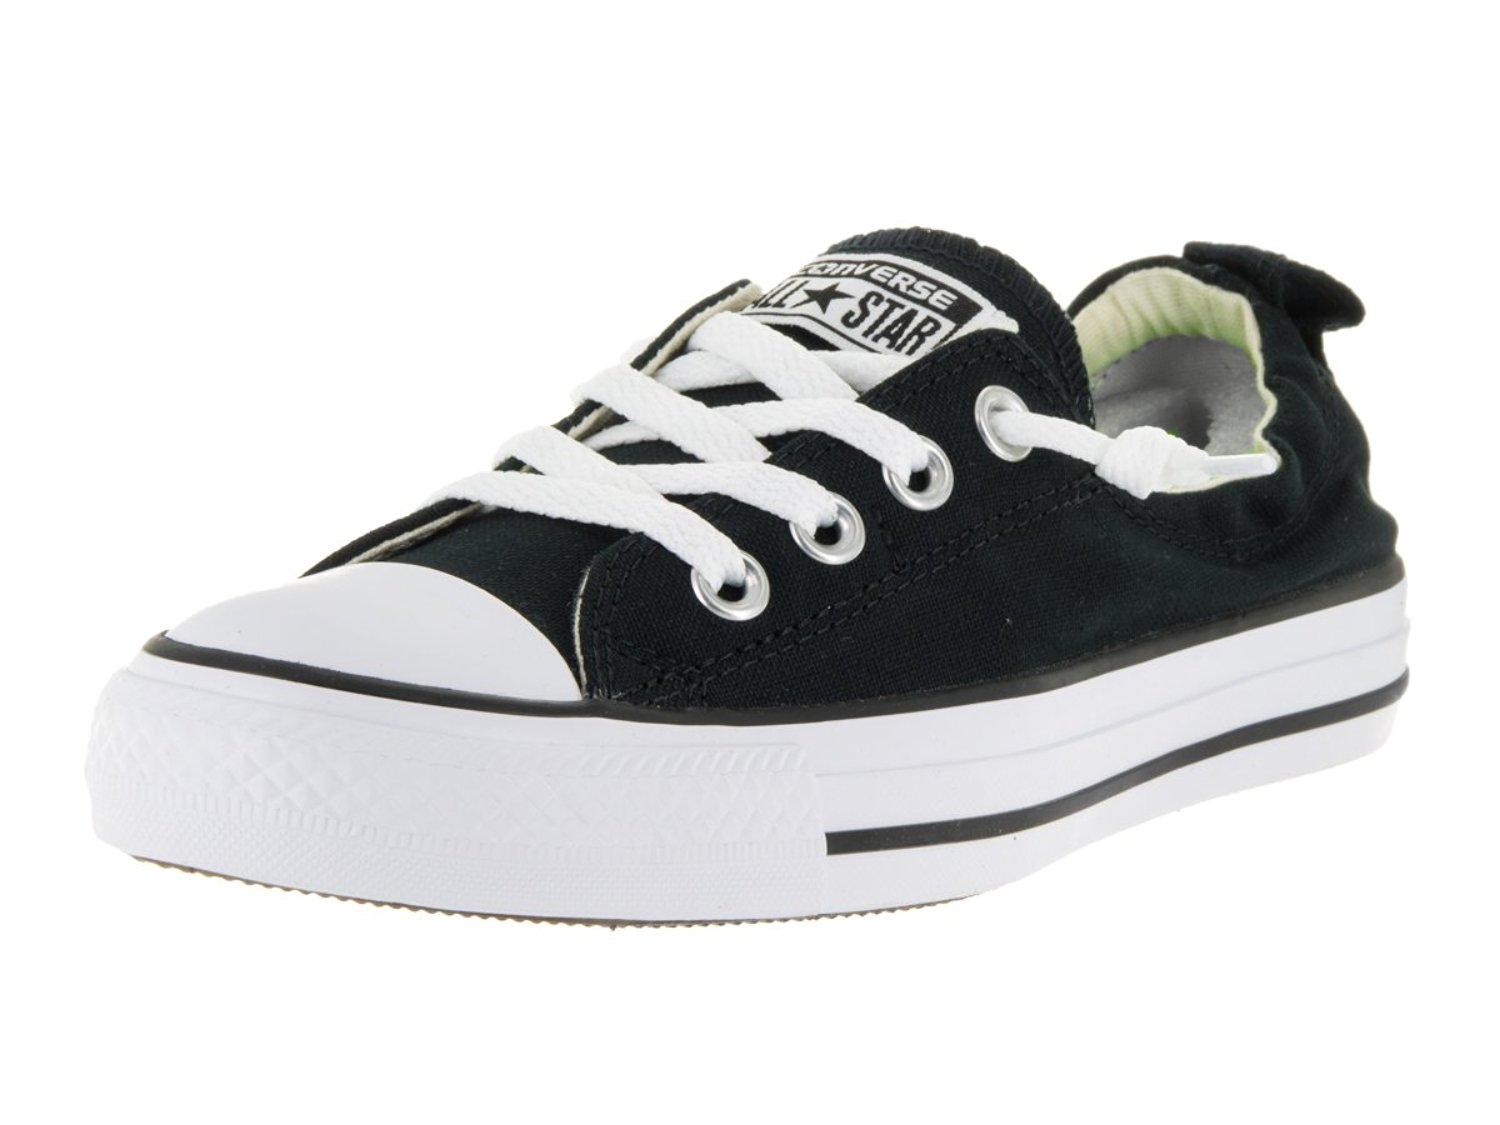 NEW WOMEN CONVERSE CHUCK TAYLOR ALL STAR SHORELINE SLIP BLACK 081F ORIGINAL